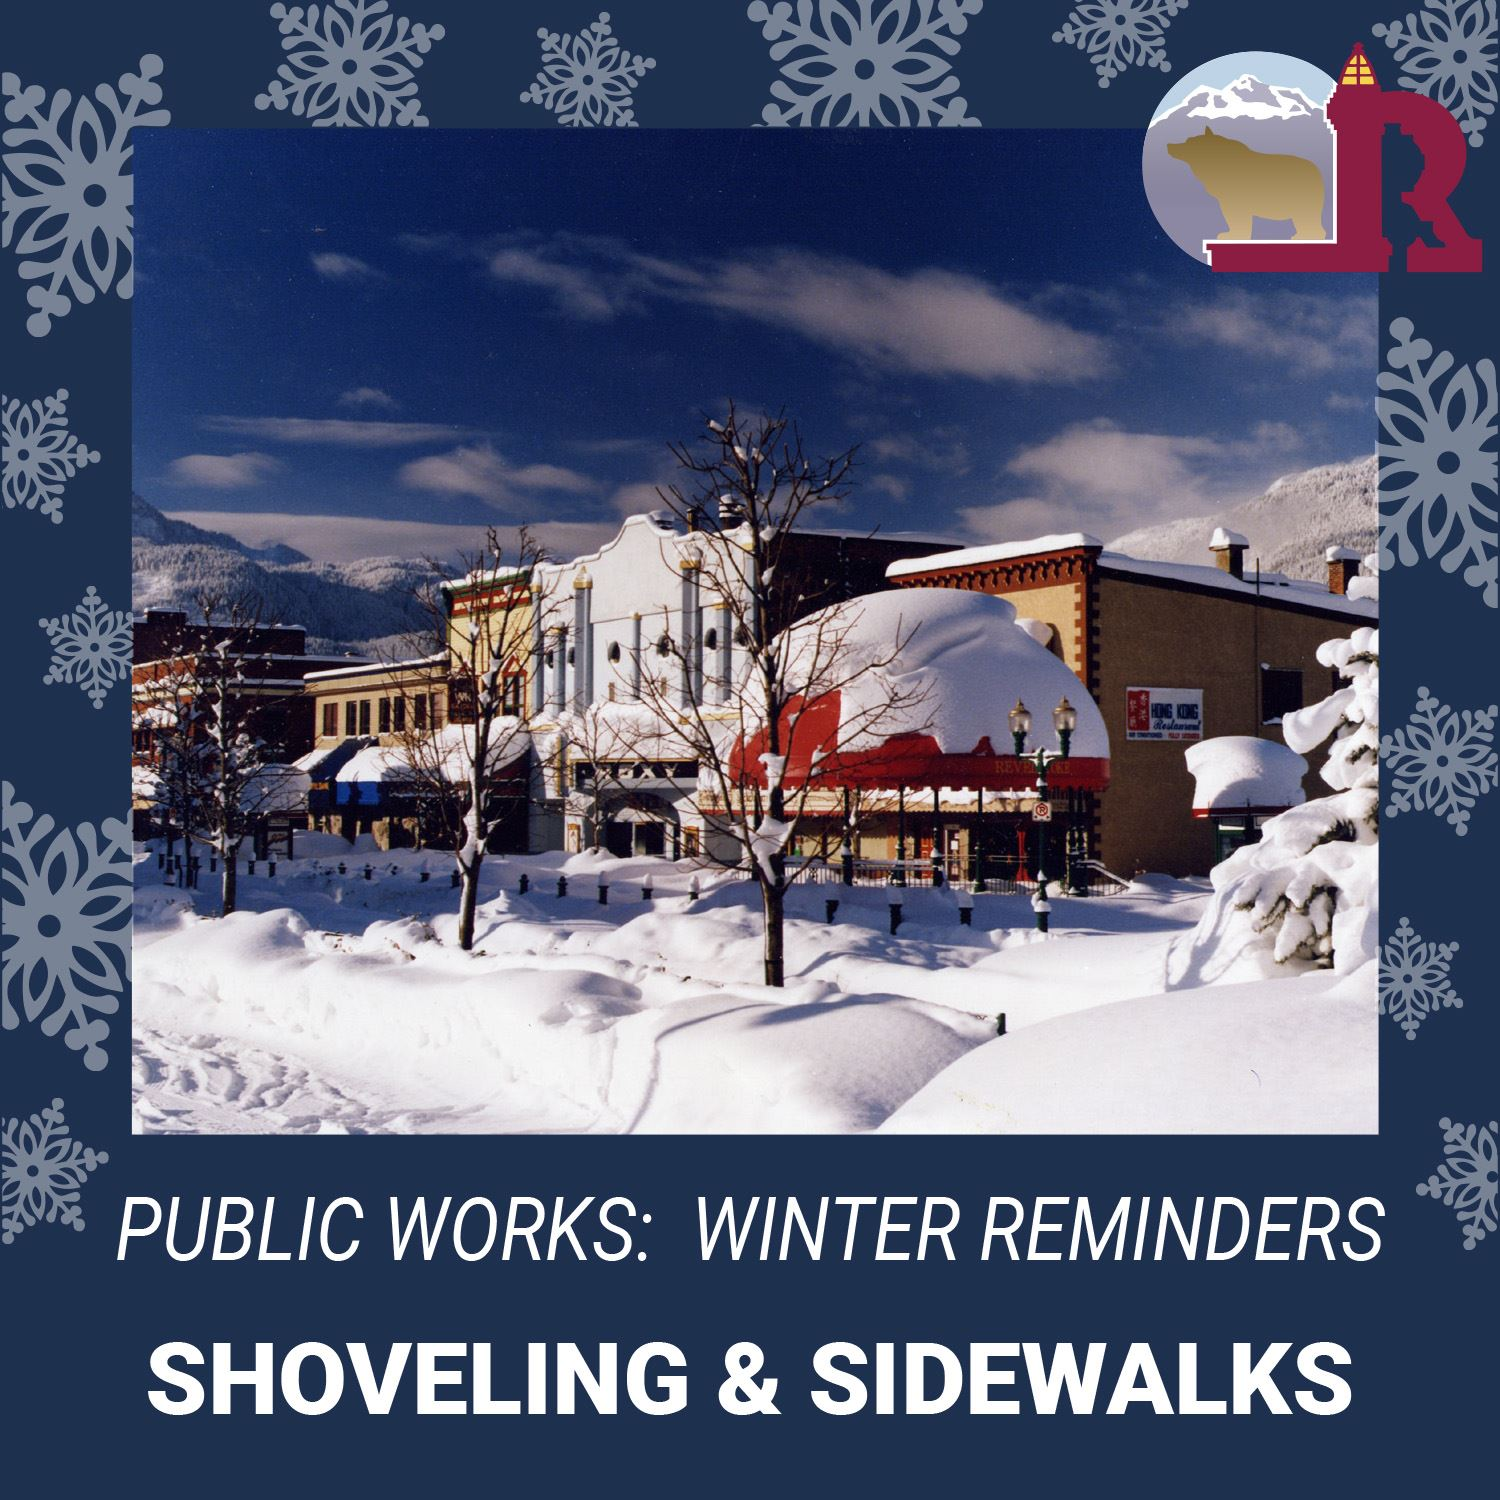 PW-Winter Messaging-Shoveling and Sidewalks